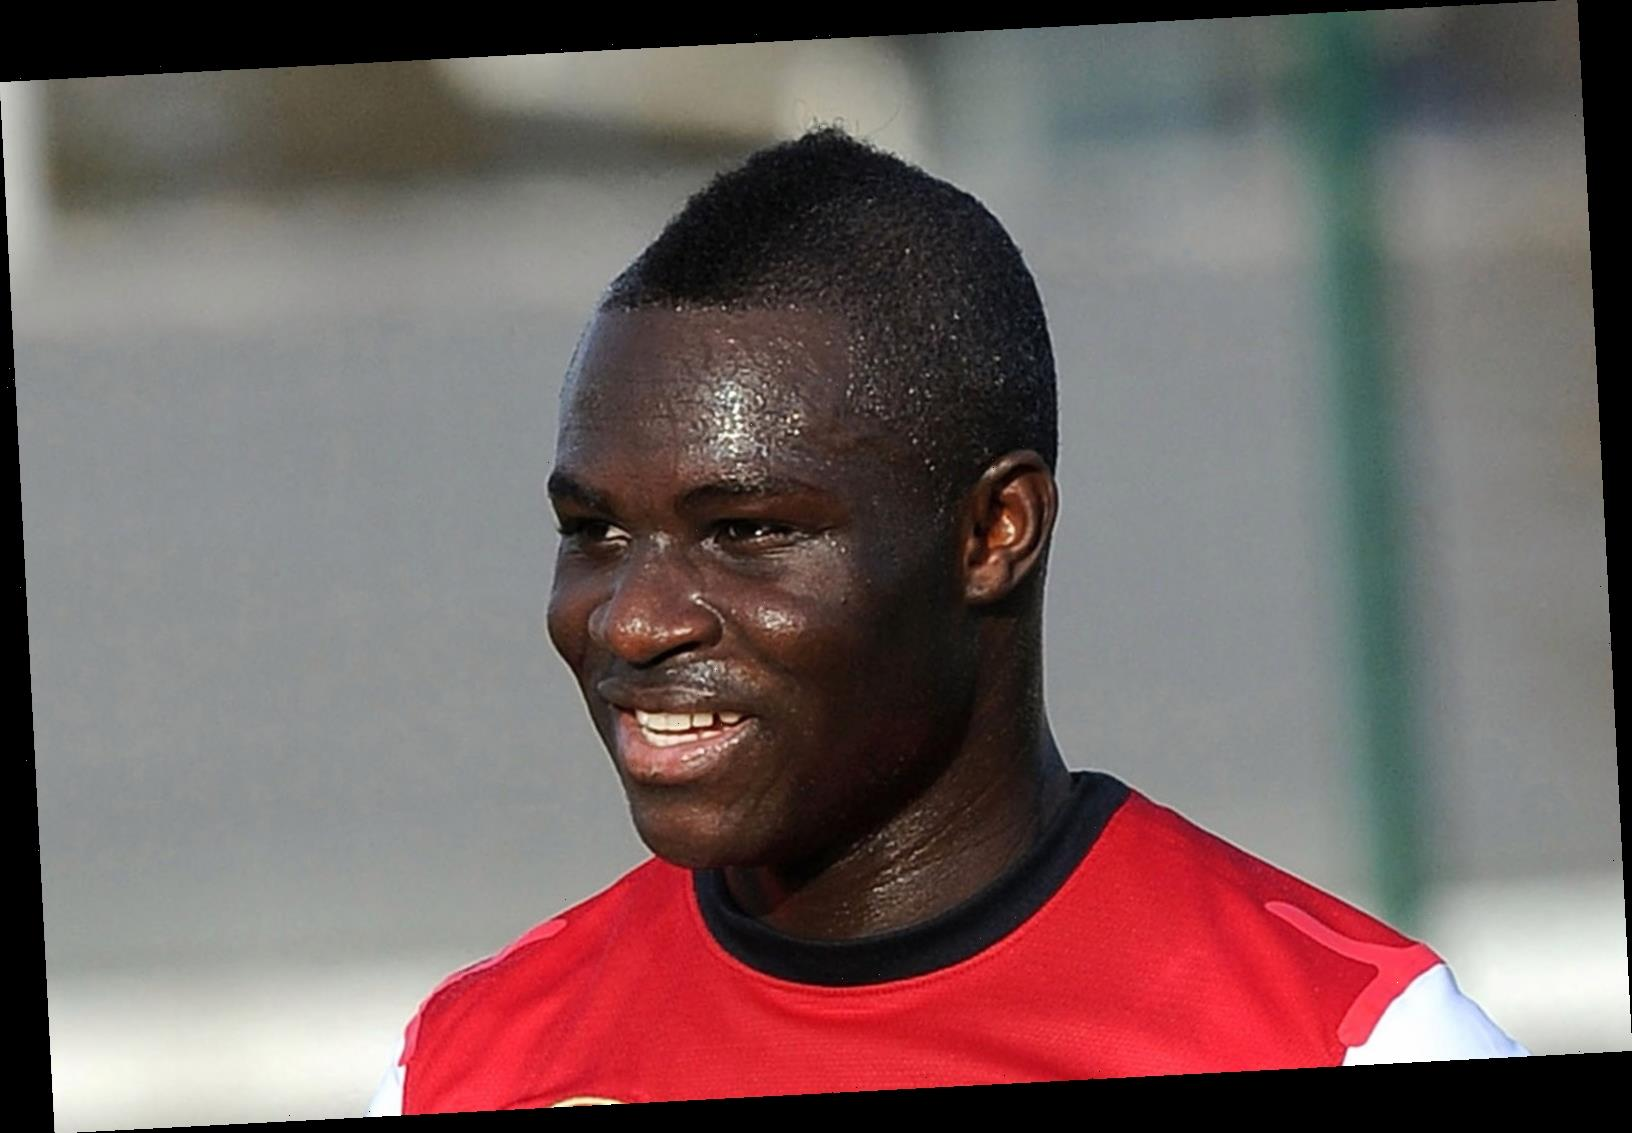 Arsenal cult hero Emmanuel Frimpong dreams of shooting porn with 20 'babes' in Russia and misses their 'beautiful' women